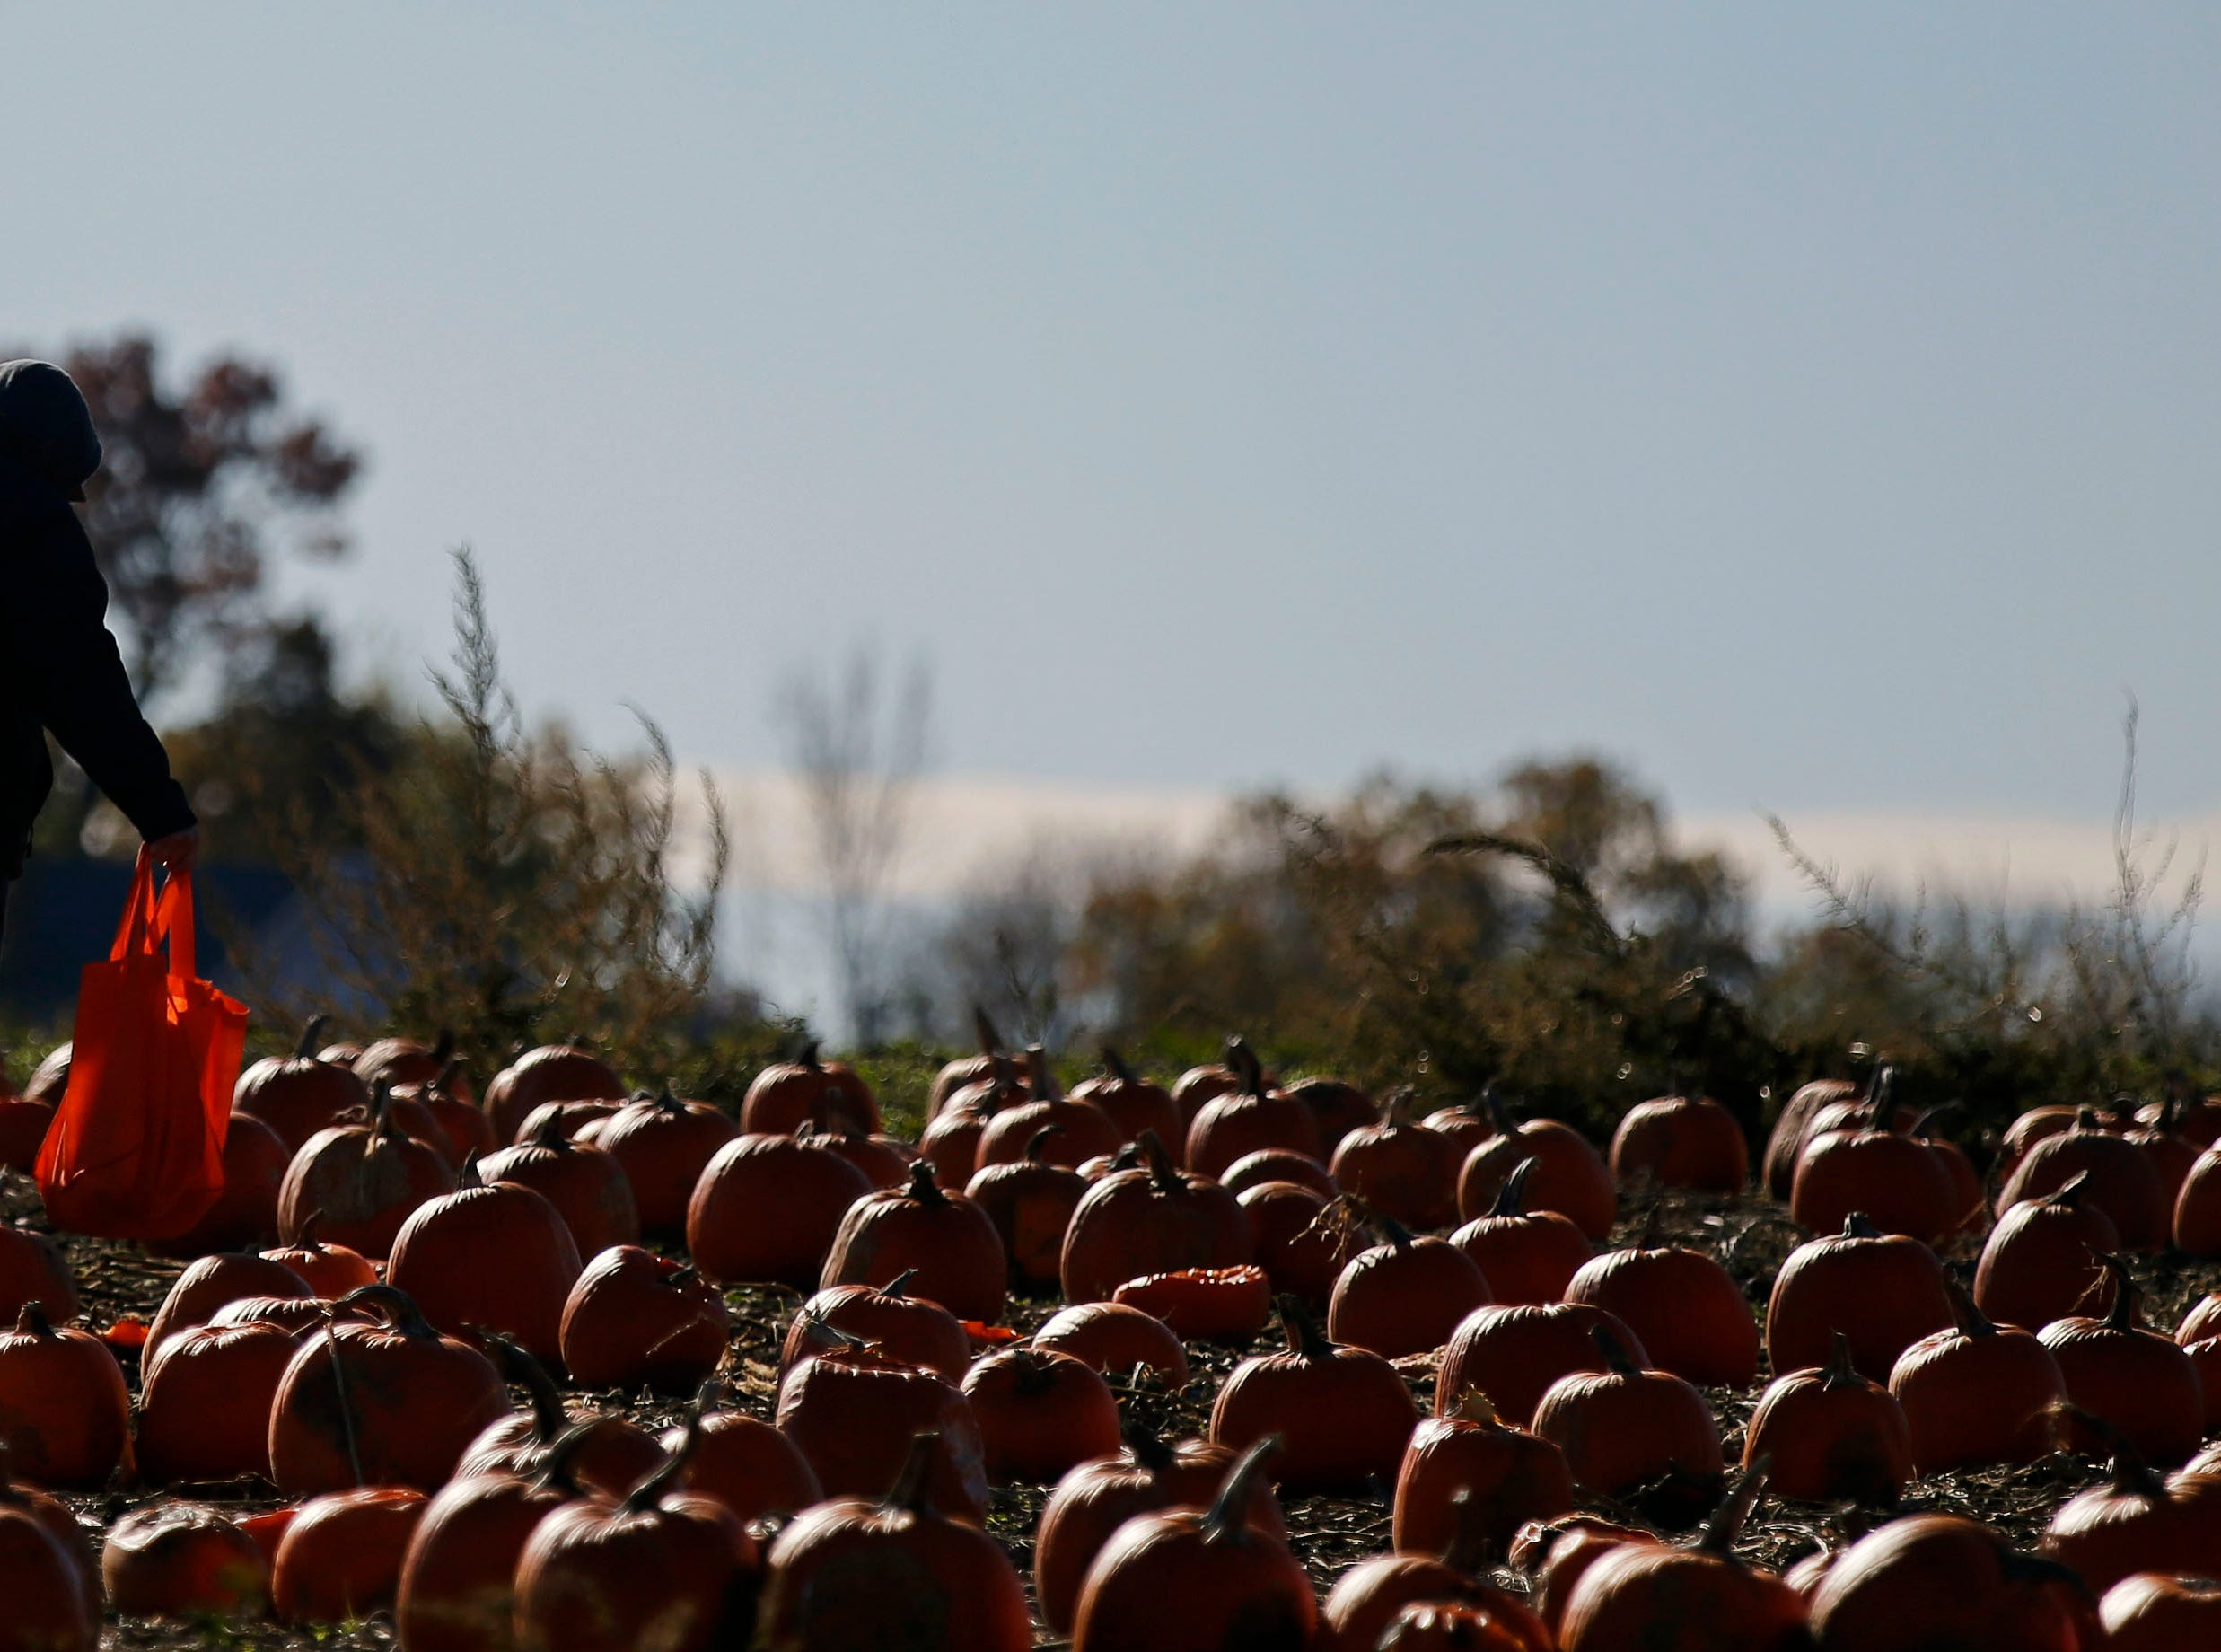 Picking a pumpkin was on the agenda for many families Sunday, October 21, 2018, at Cuff Farms in Hortonville, Wis.